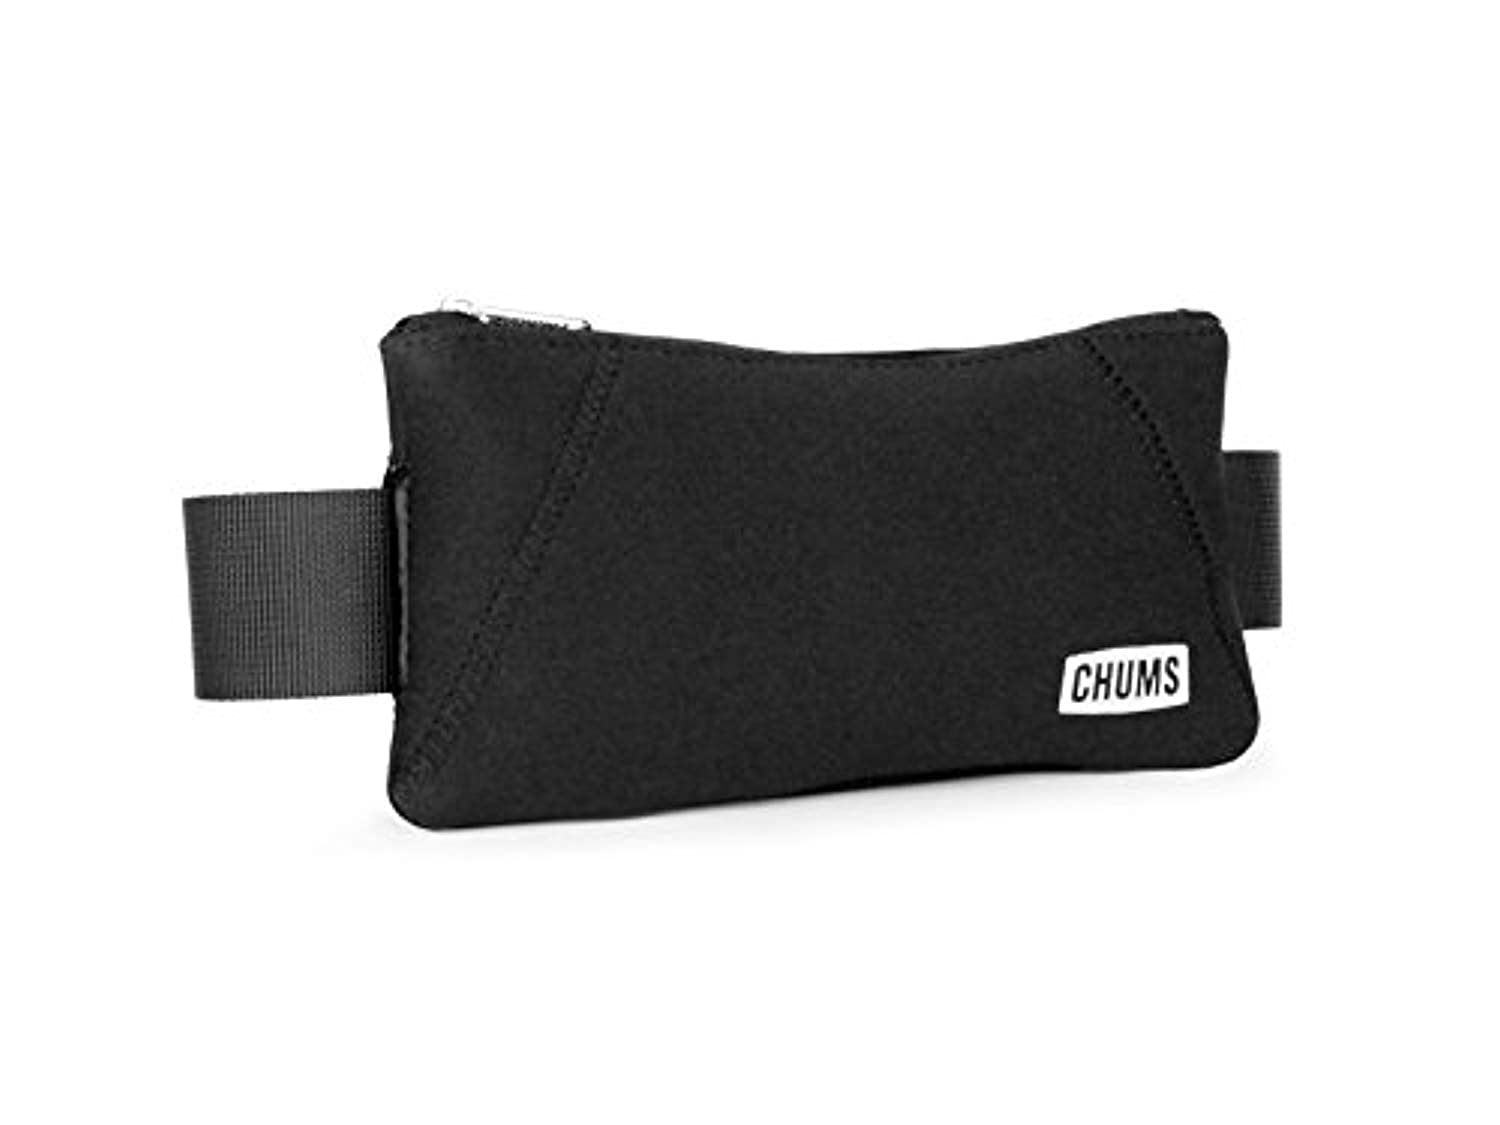 Chums Gym Jam /& Floating Wallet Boating Wear Bundle